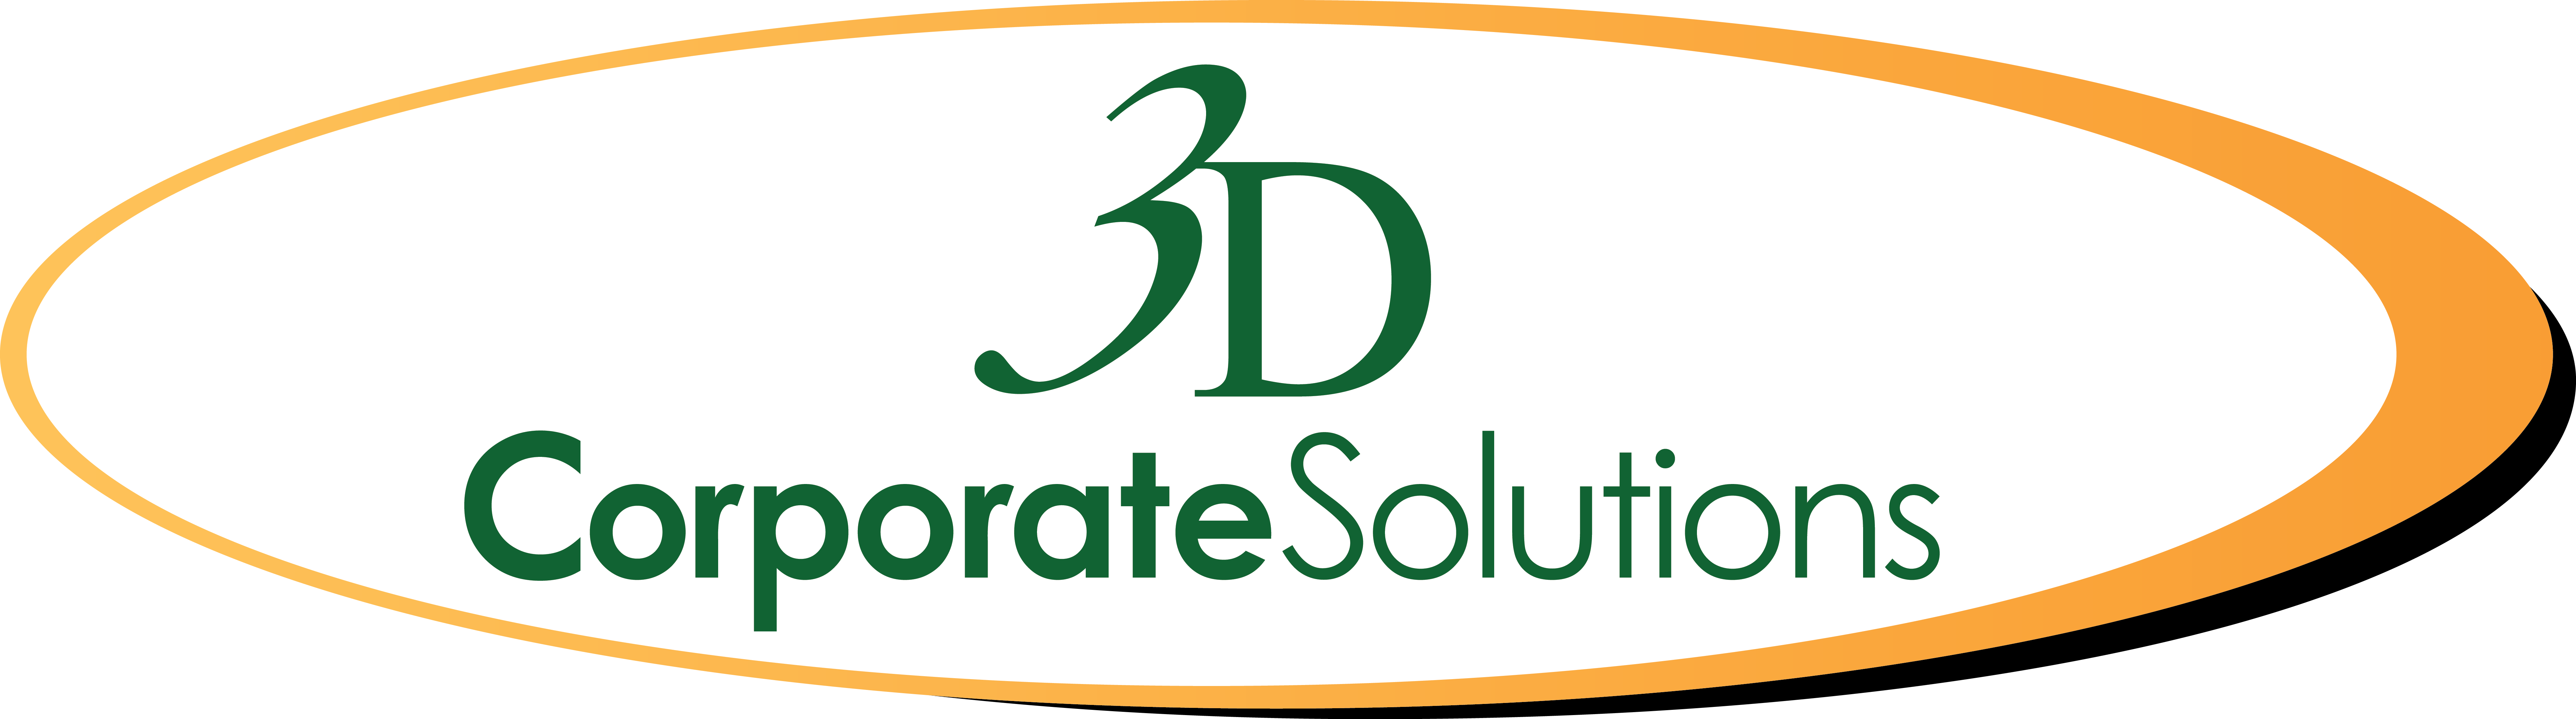 3D Corporate Solutions